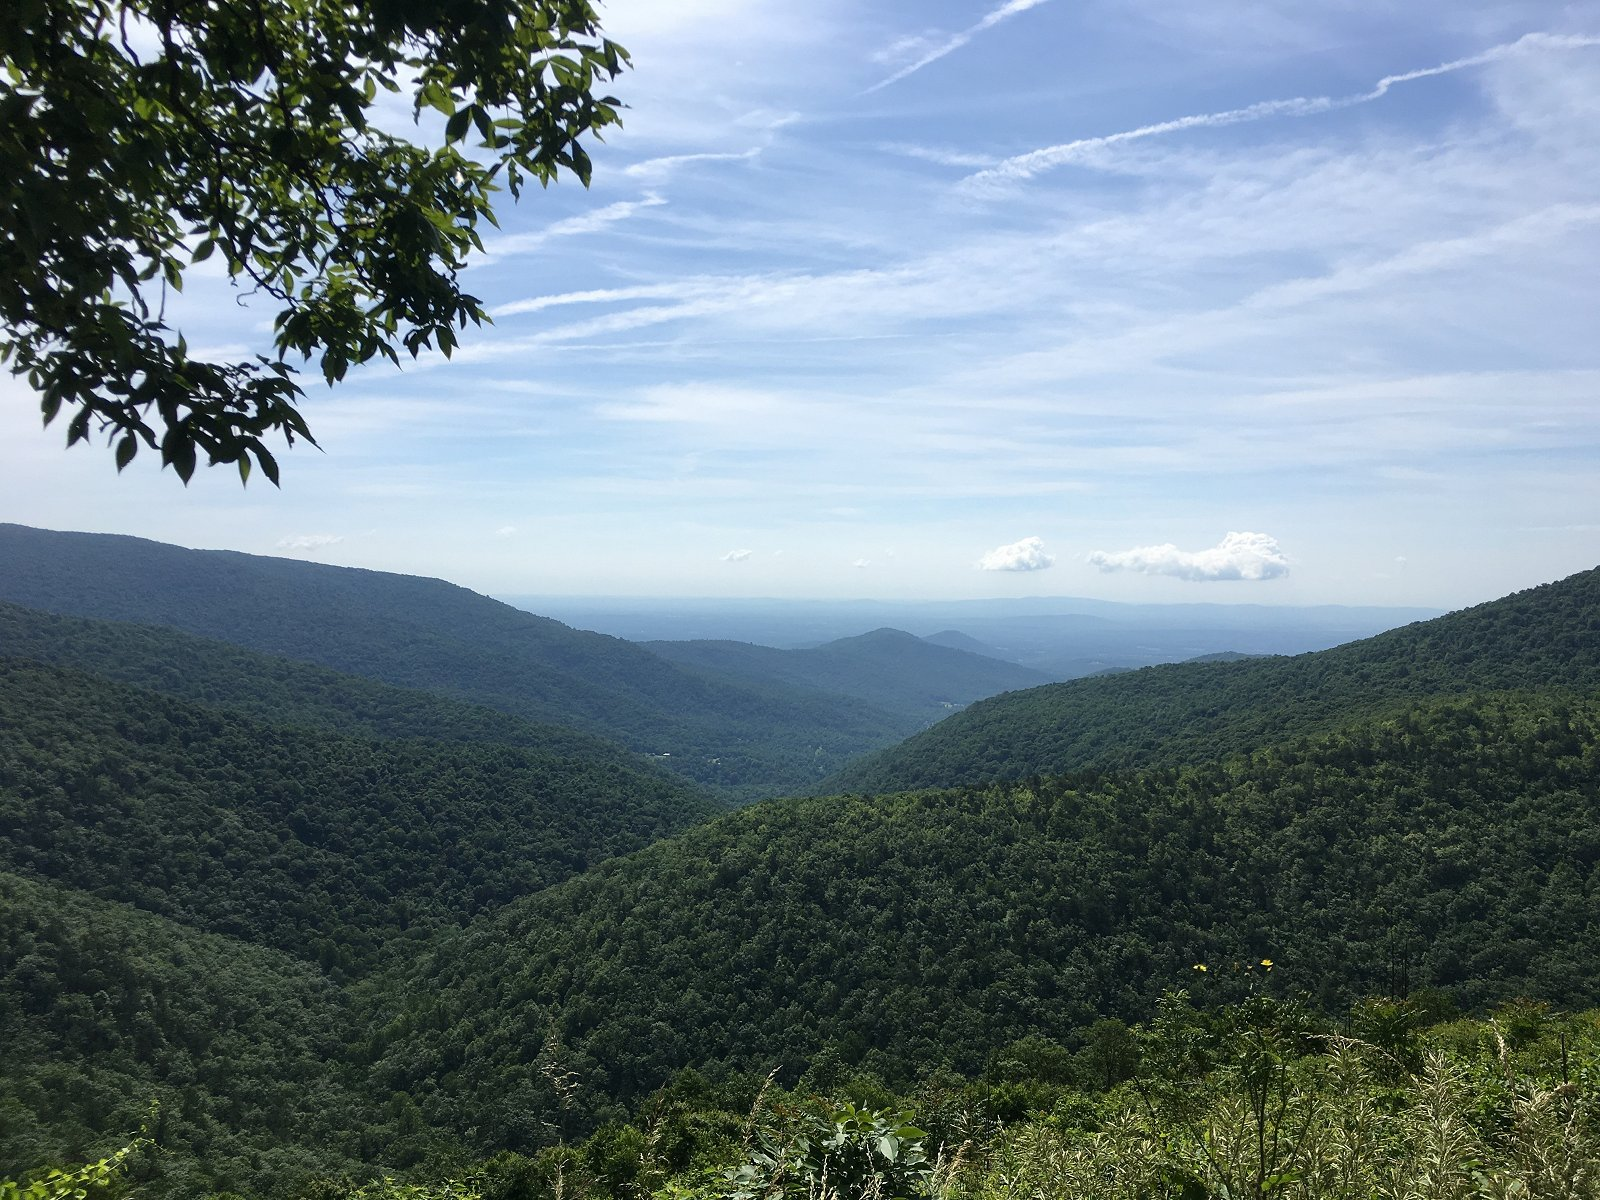 2018 Outbound Journey to FF Central Virginia - June 13-18